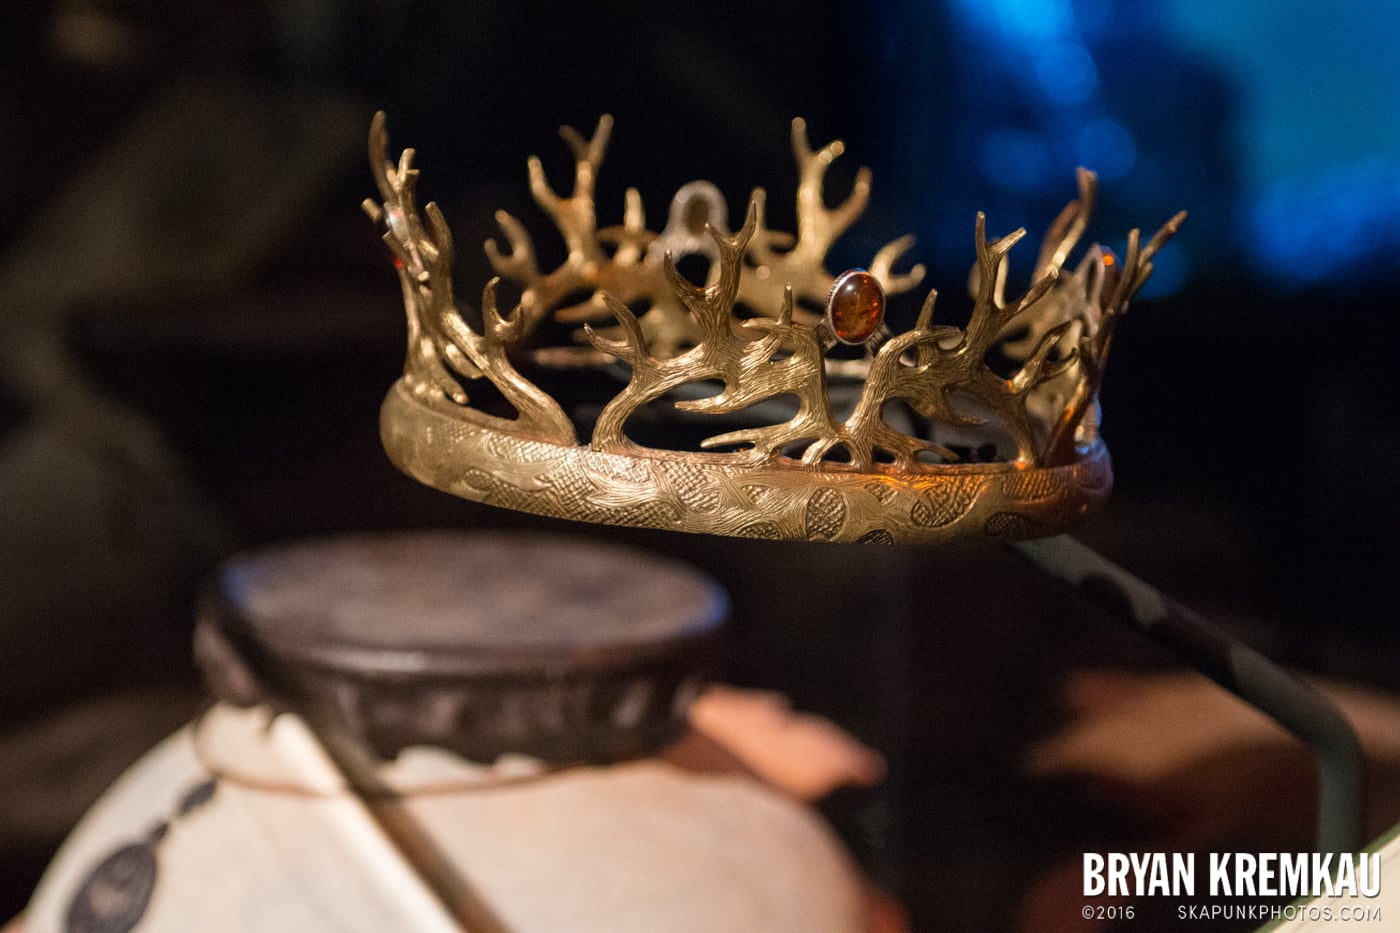 Game Of Thrones Exhibition @ New York, NY - 3.29.13 (34)